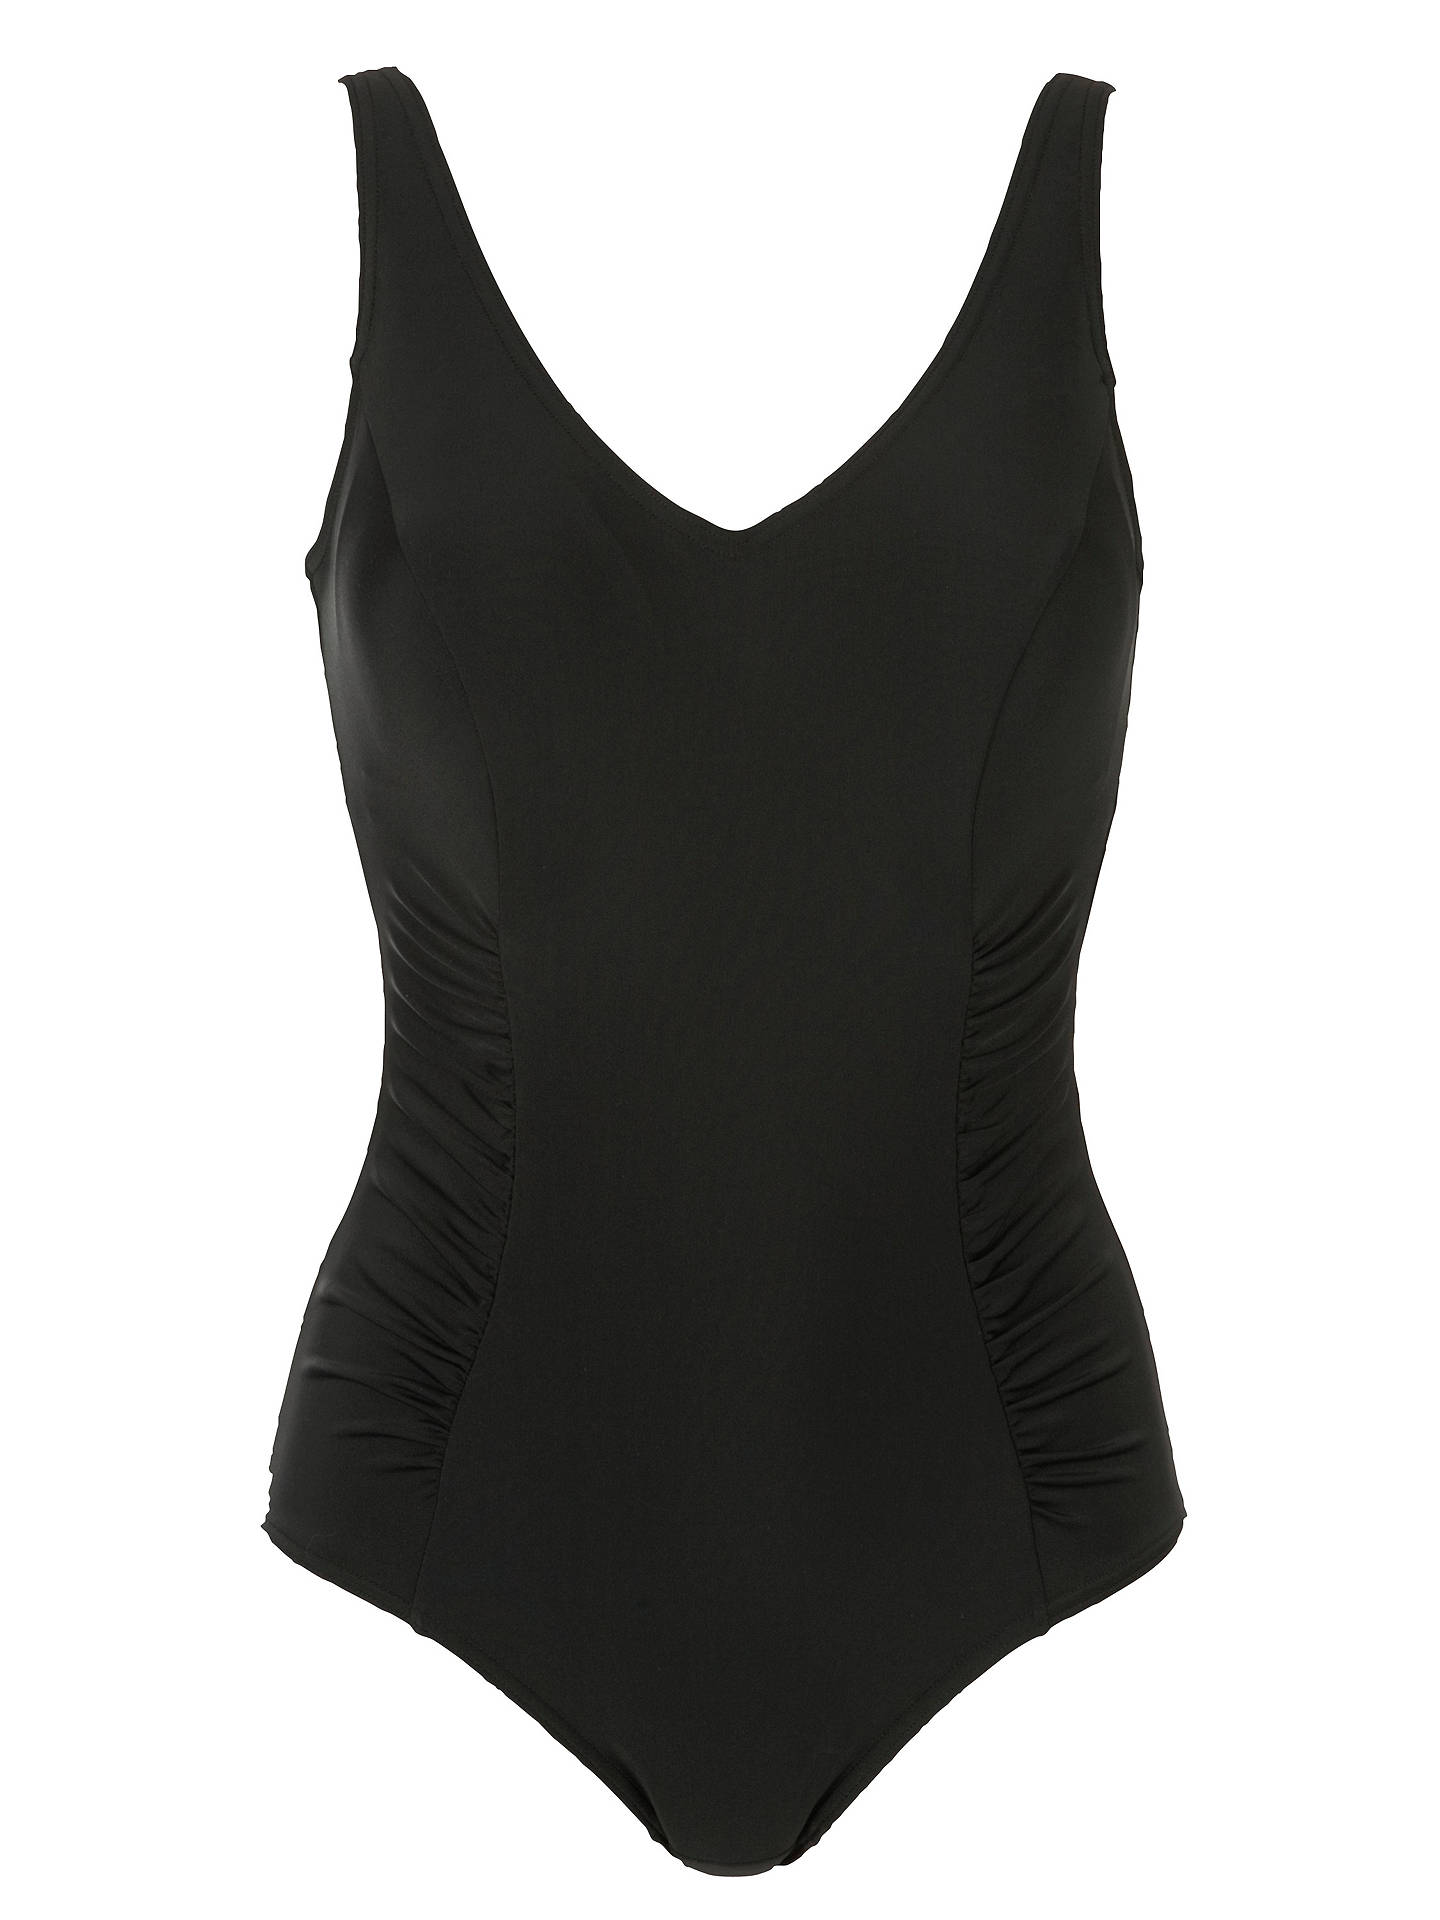 BuyJohn Lewis & Partners Control Side Ruched Swimsuit, Black, 10 Online at johnlewis.com